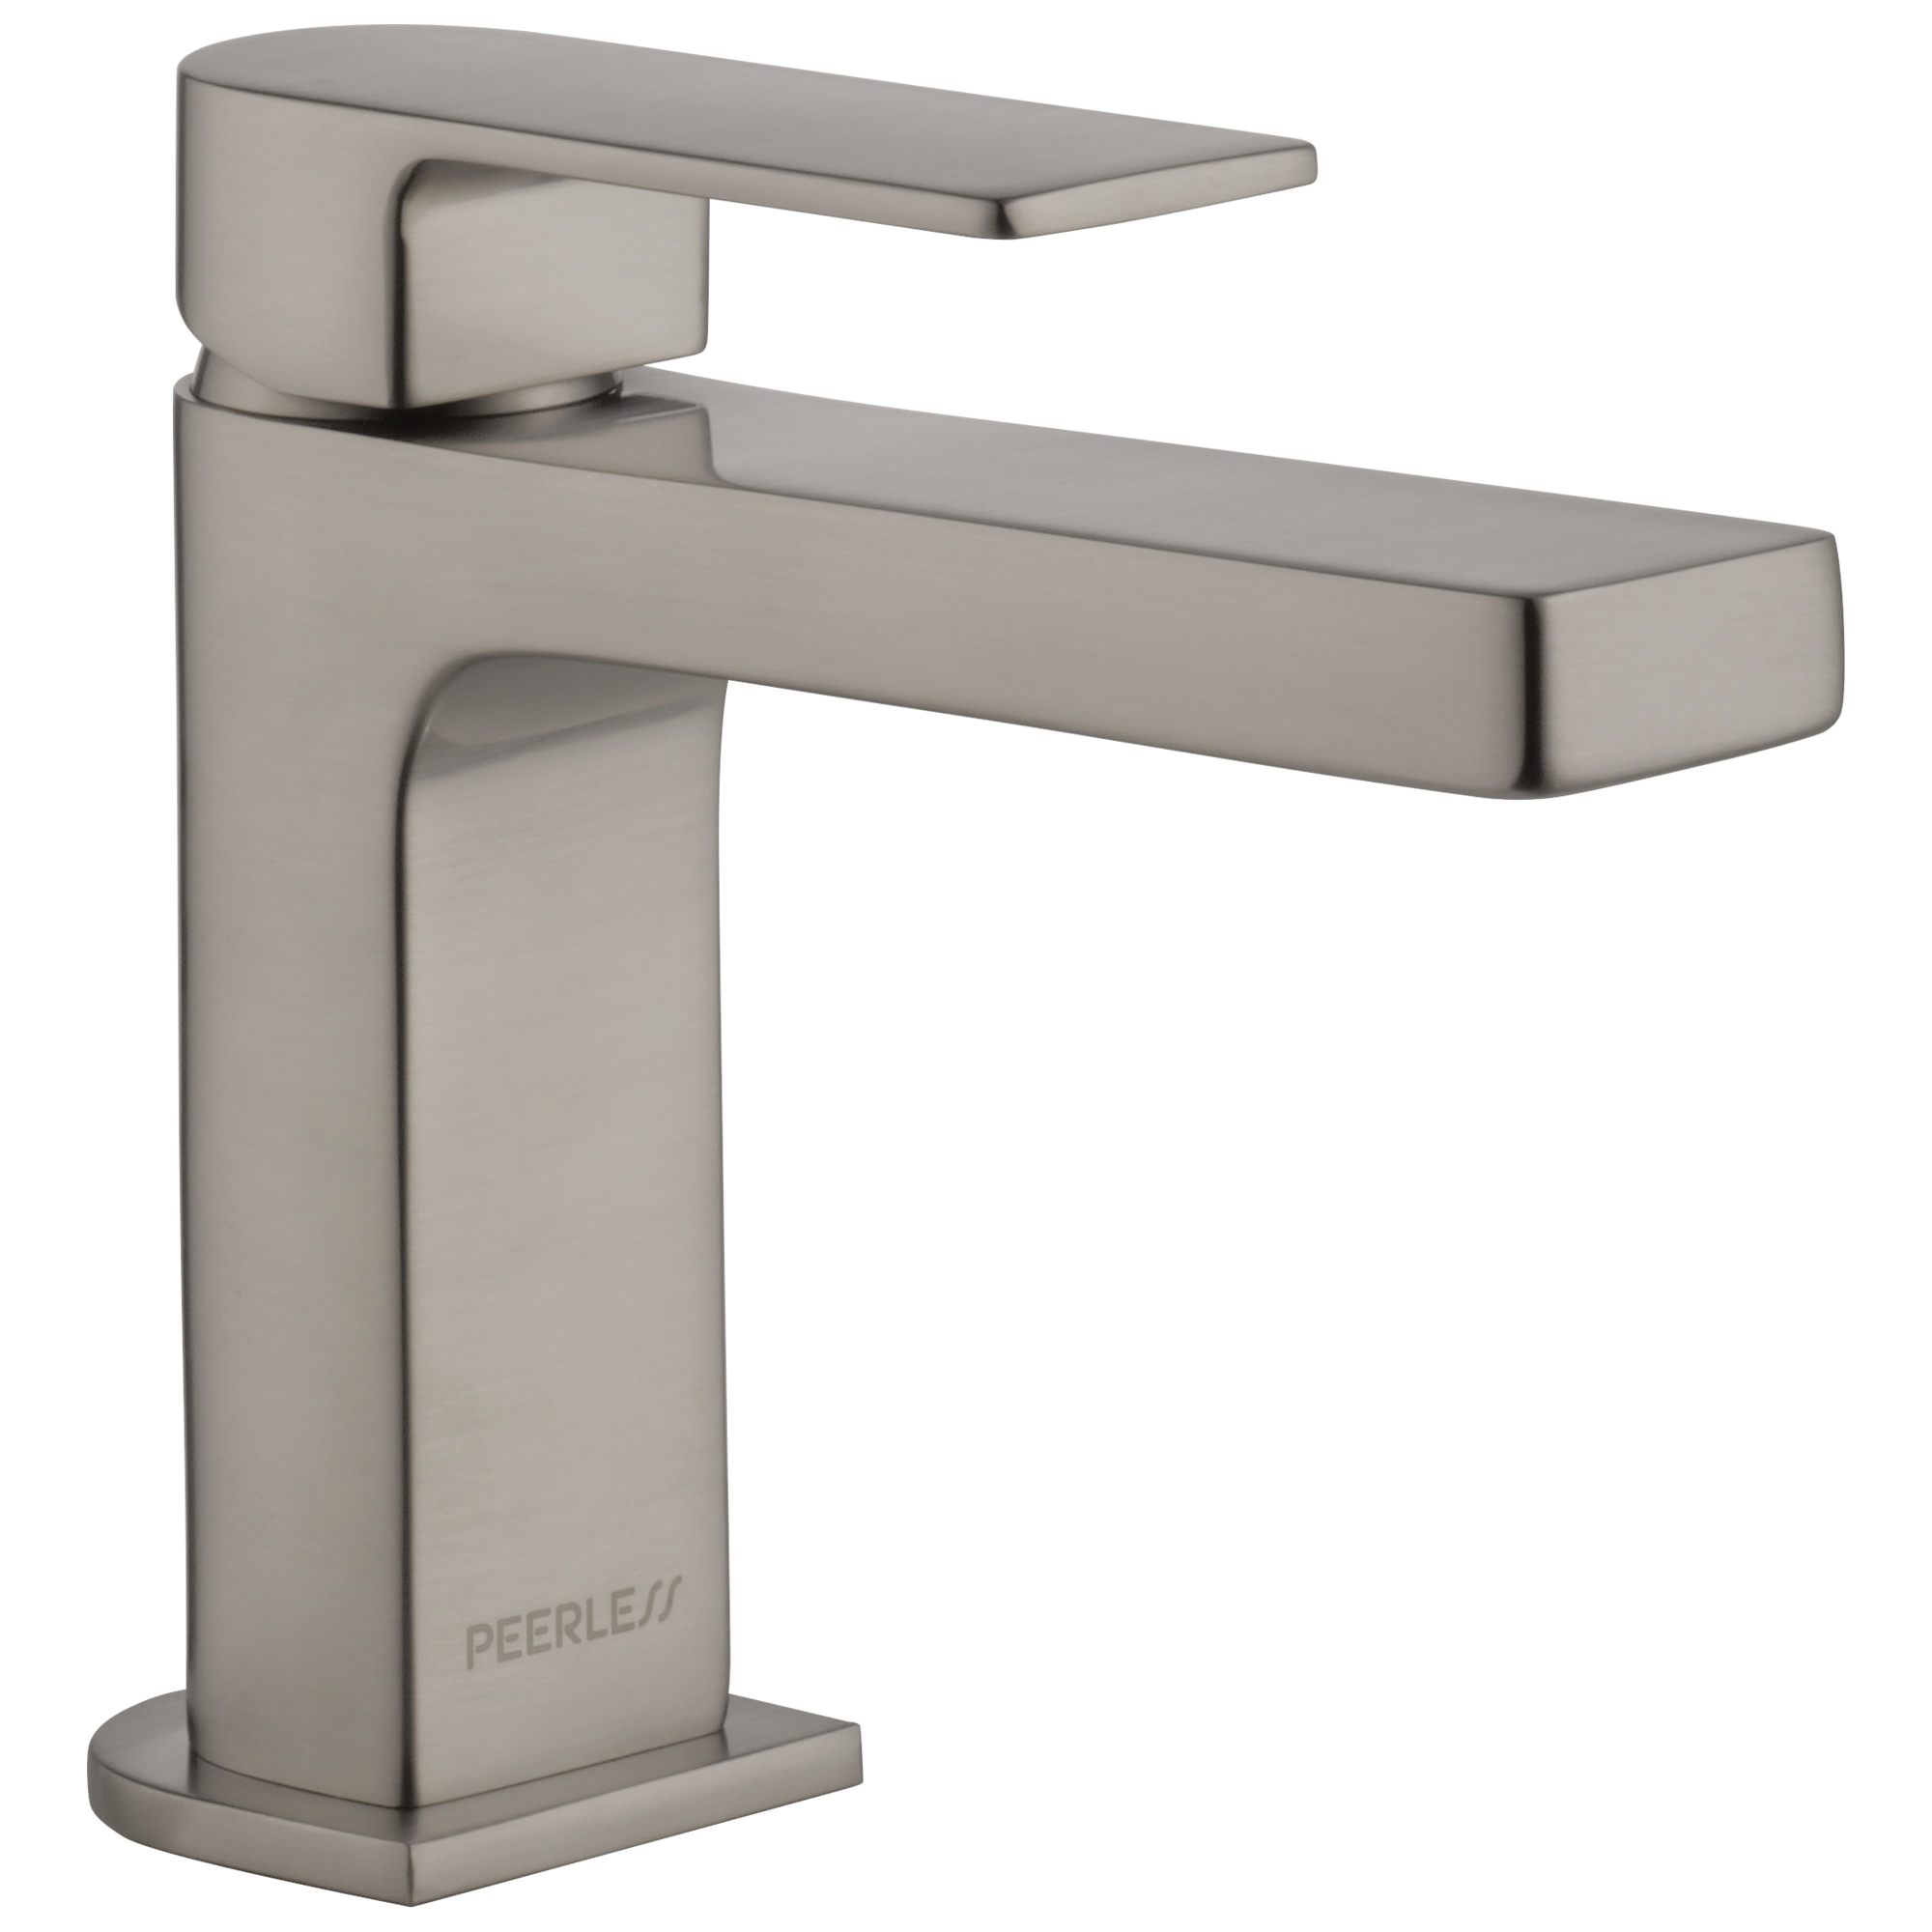 Peerless® P1519LF-BN-LPU Bathroom Faucet, Xander™, Brushed Nickel, 1 Handles, 1 gpm